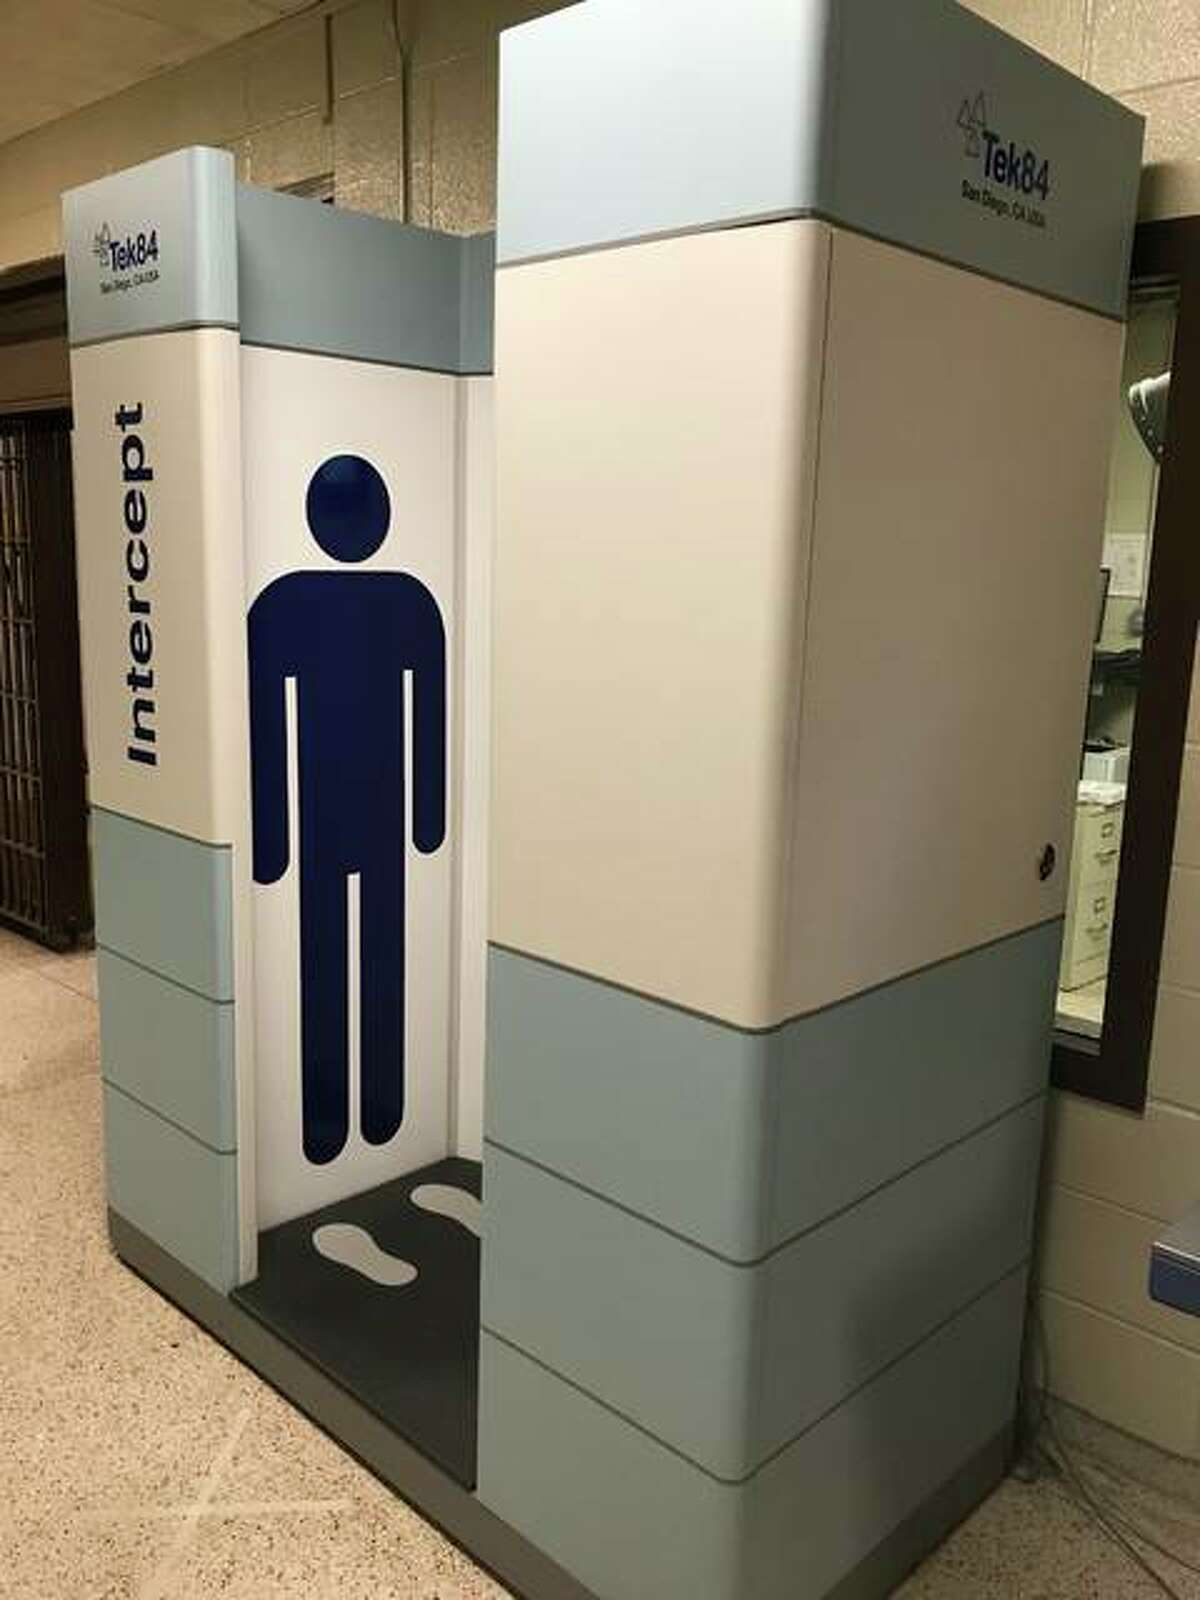 A new full-body scanner at the Madison County Jail is helping to keep detainees and jail officials safe by locating contraband that previously might have been undetected.